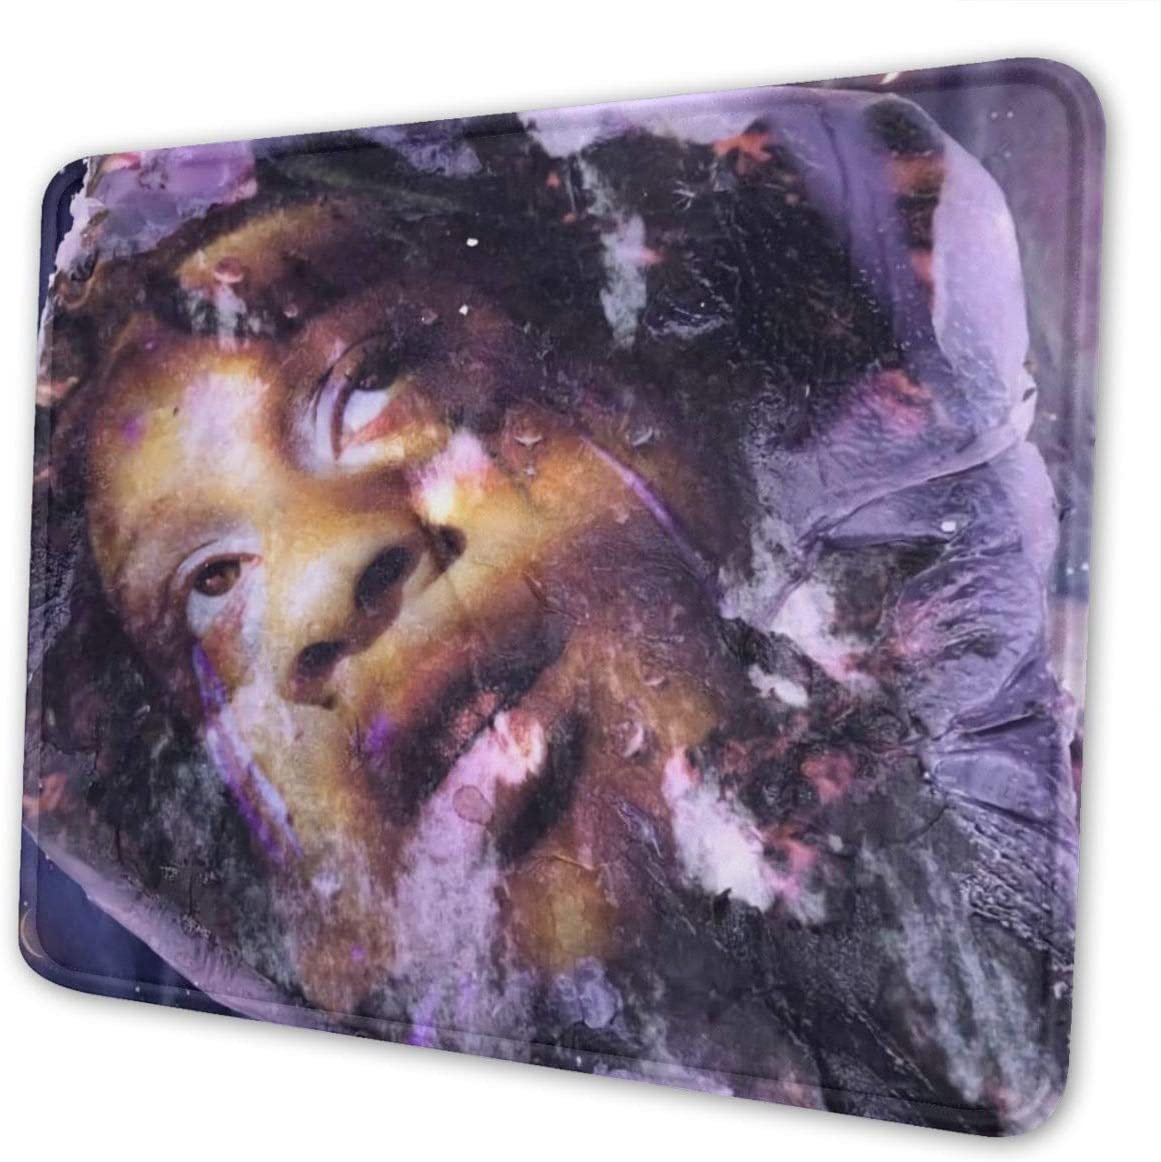 NaohBent Trippie Redd A Love Letter to You Mouse Pad Office Desk Pad for Laptop Computer PC Game Mouse Pad Multiple 10 X 12 Inch